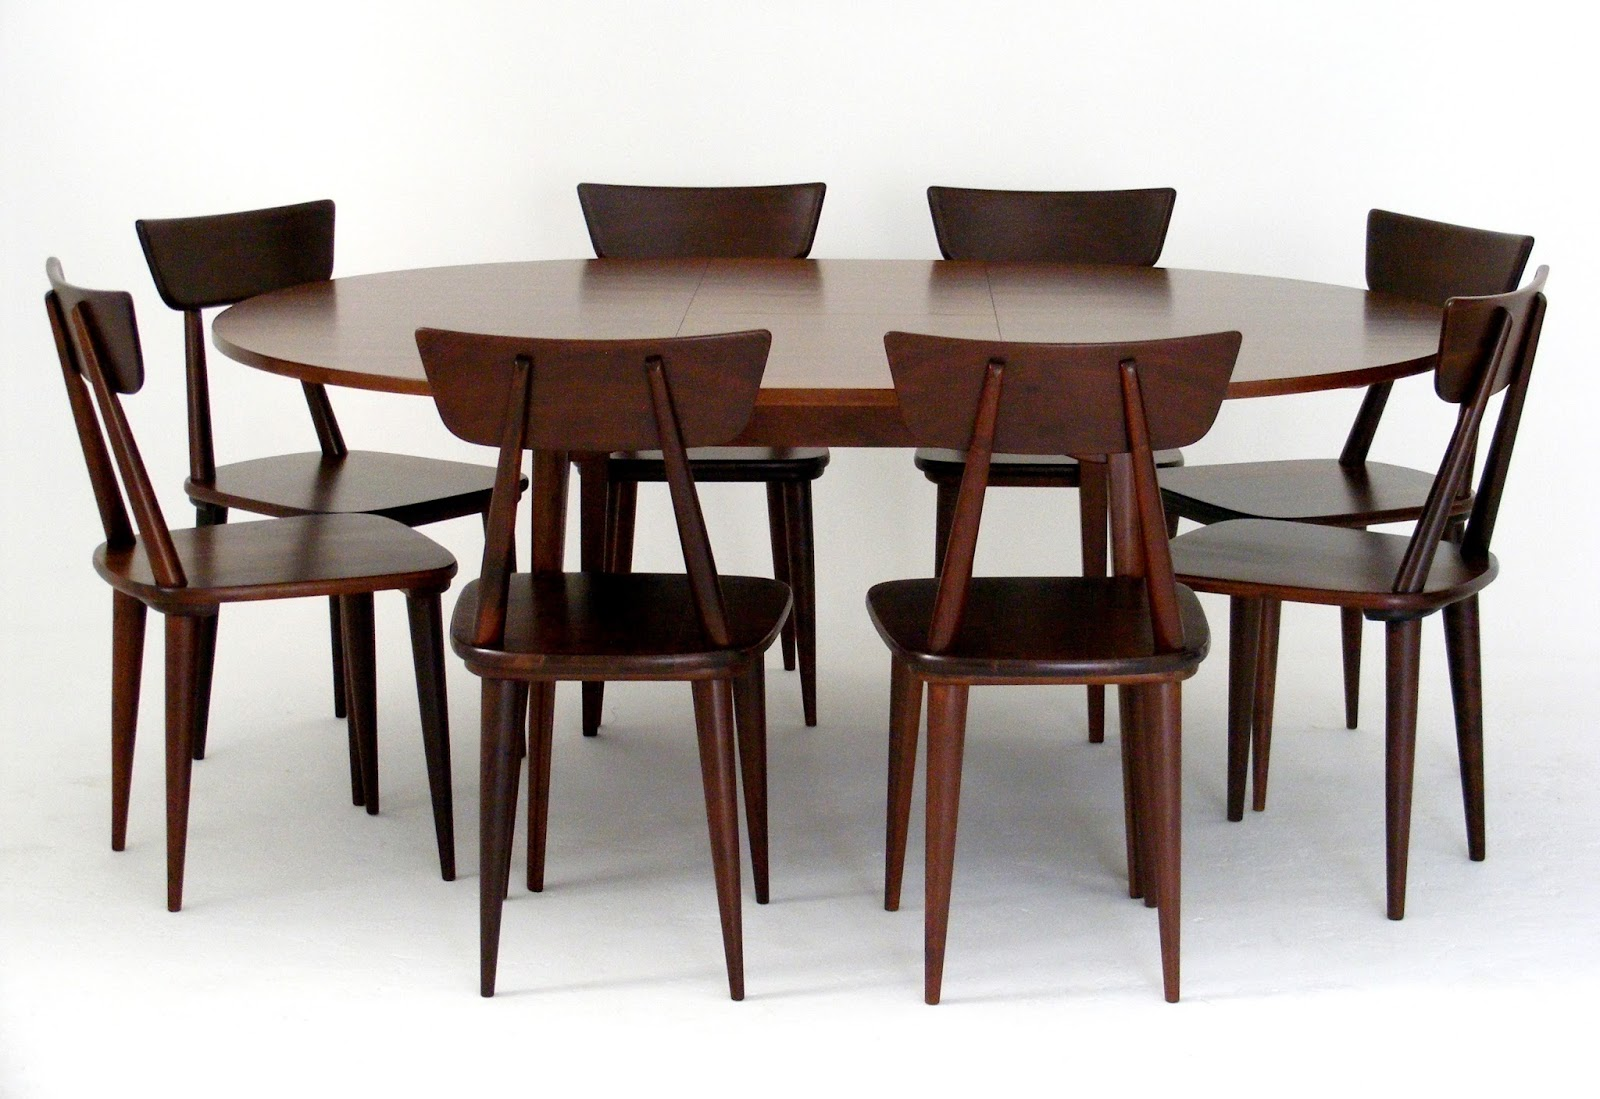 A Mid Century Extendable Dining Table Designed By EE Meyer For Binnehuis Using Combination Of Solid And Veneered Imbuia